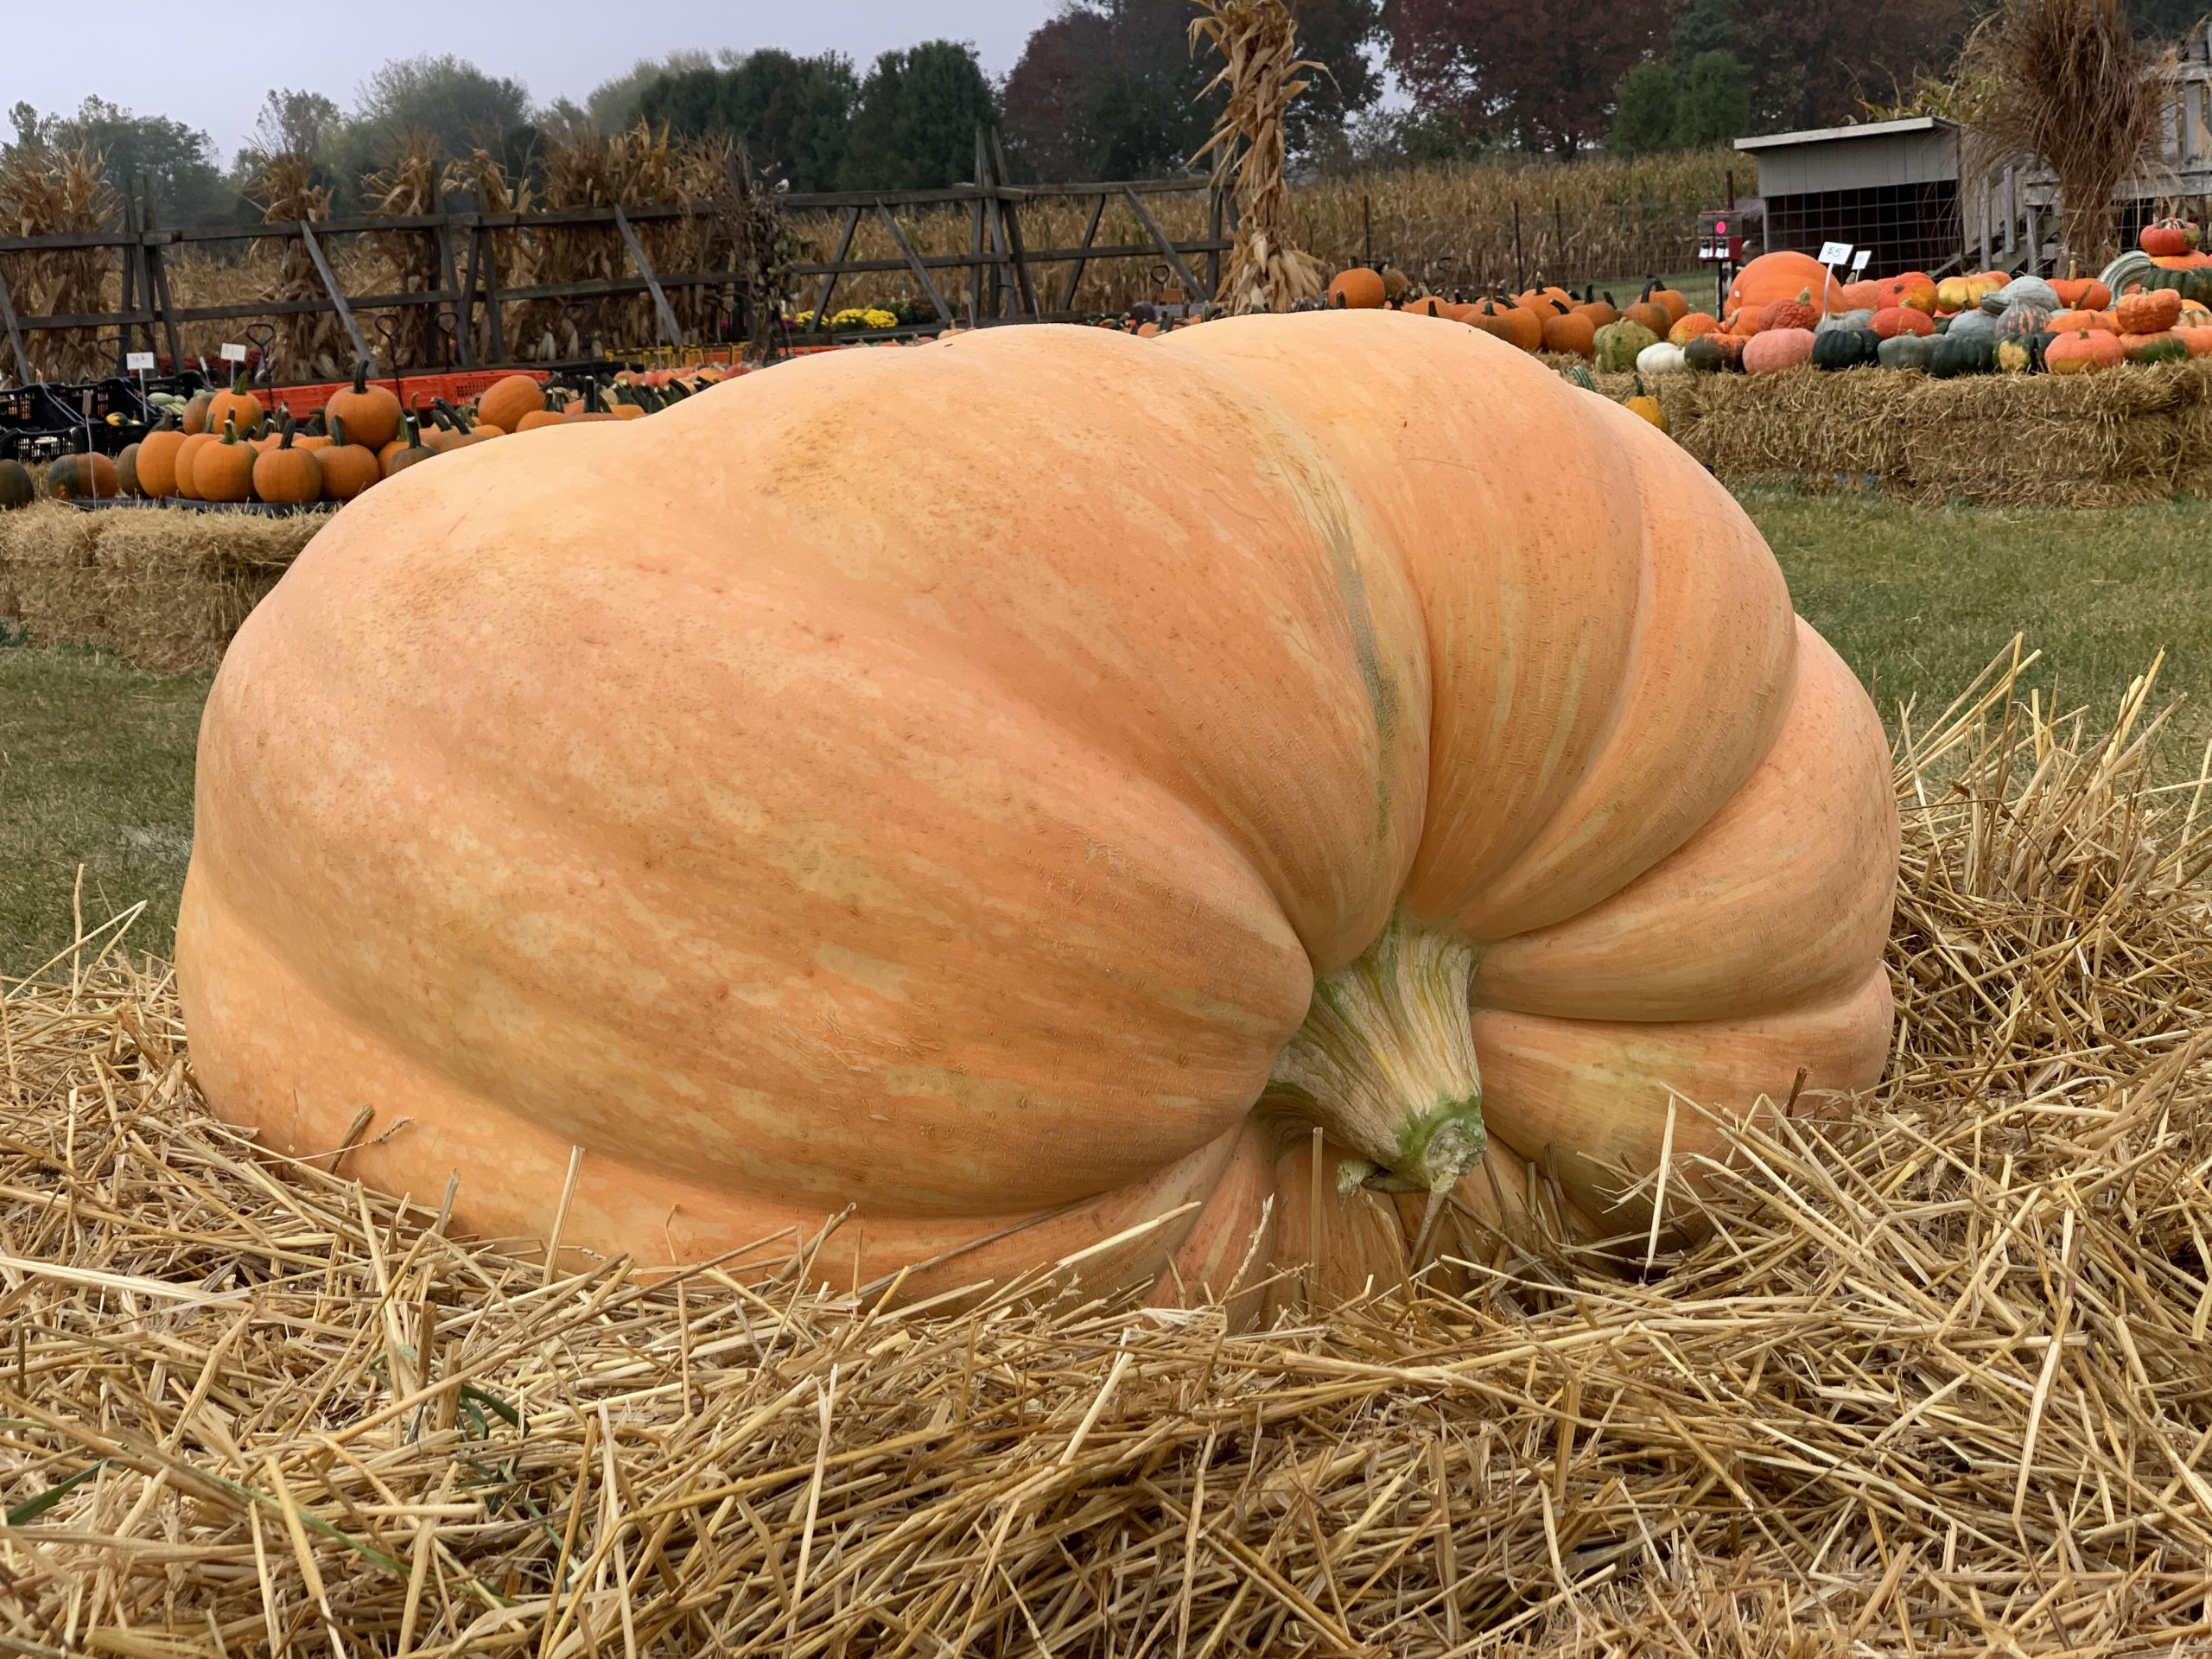 Large Pumpkin Majestic Nursery & Gardens